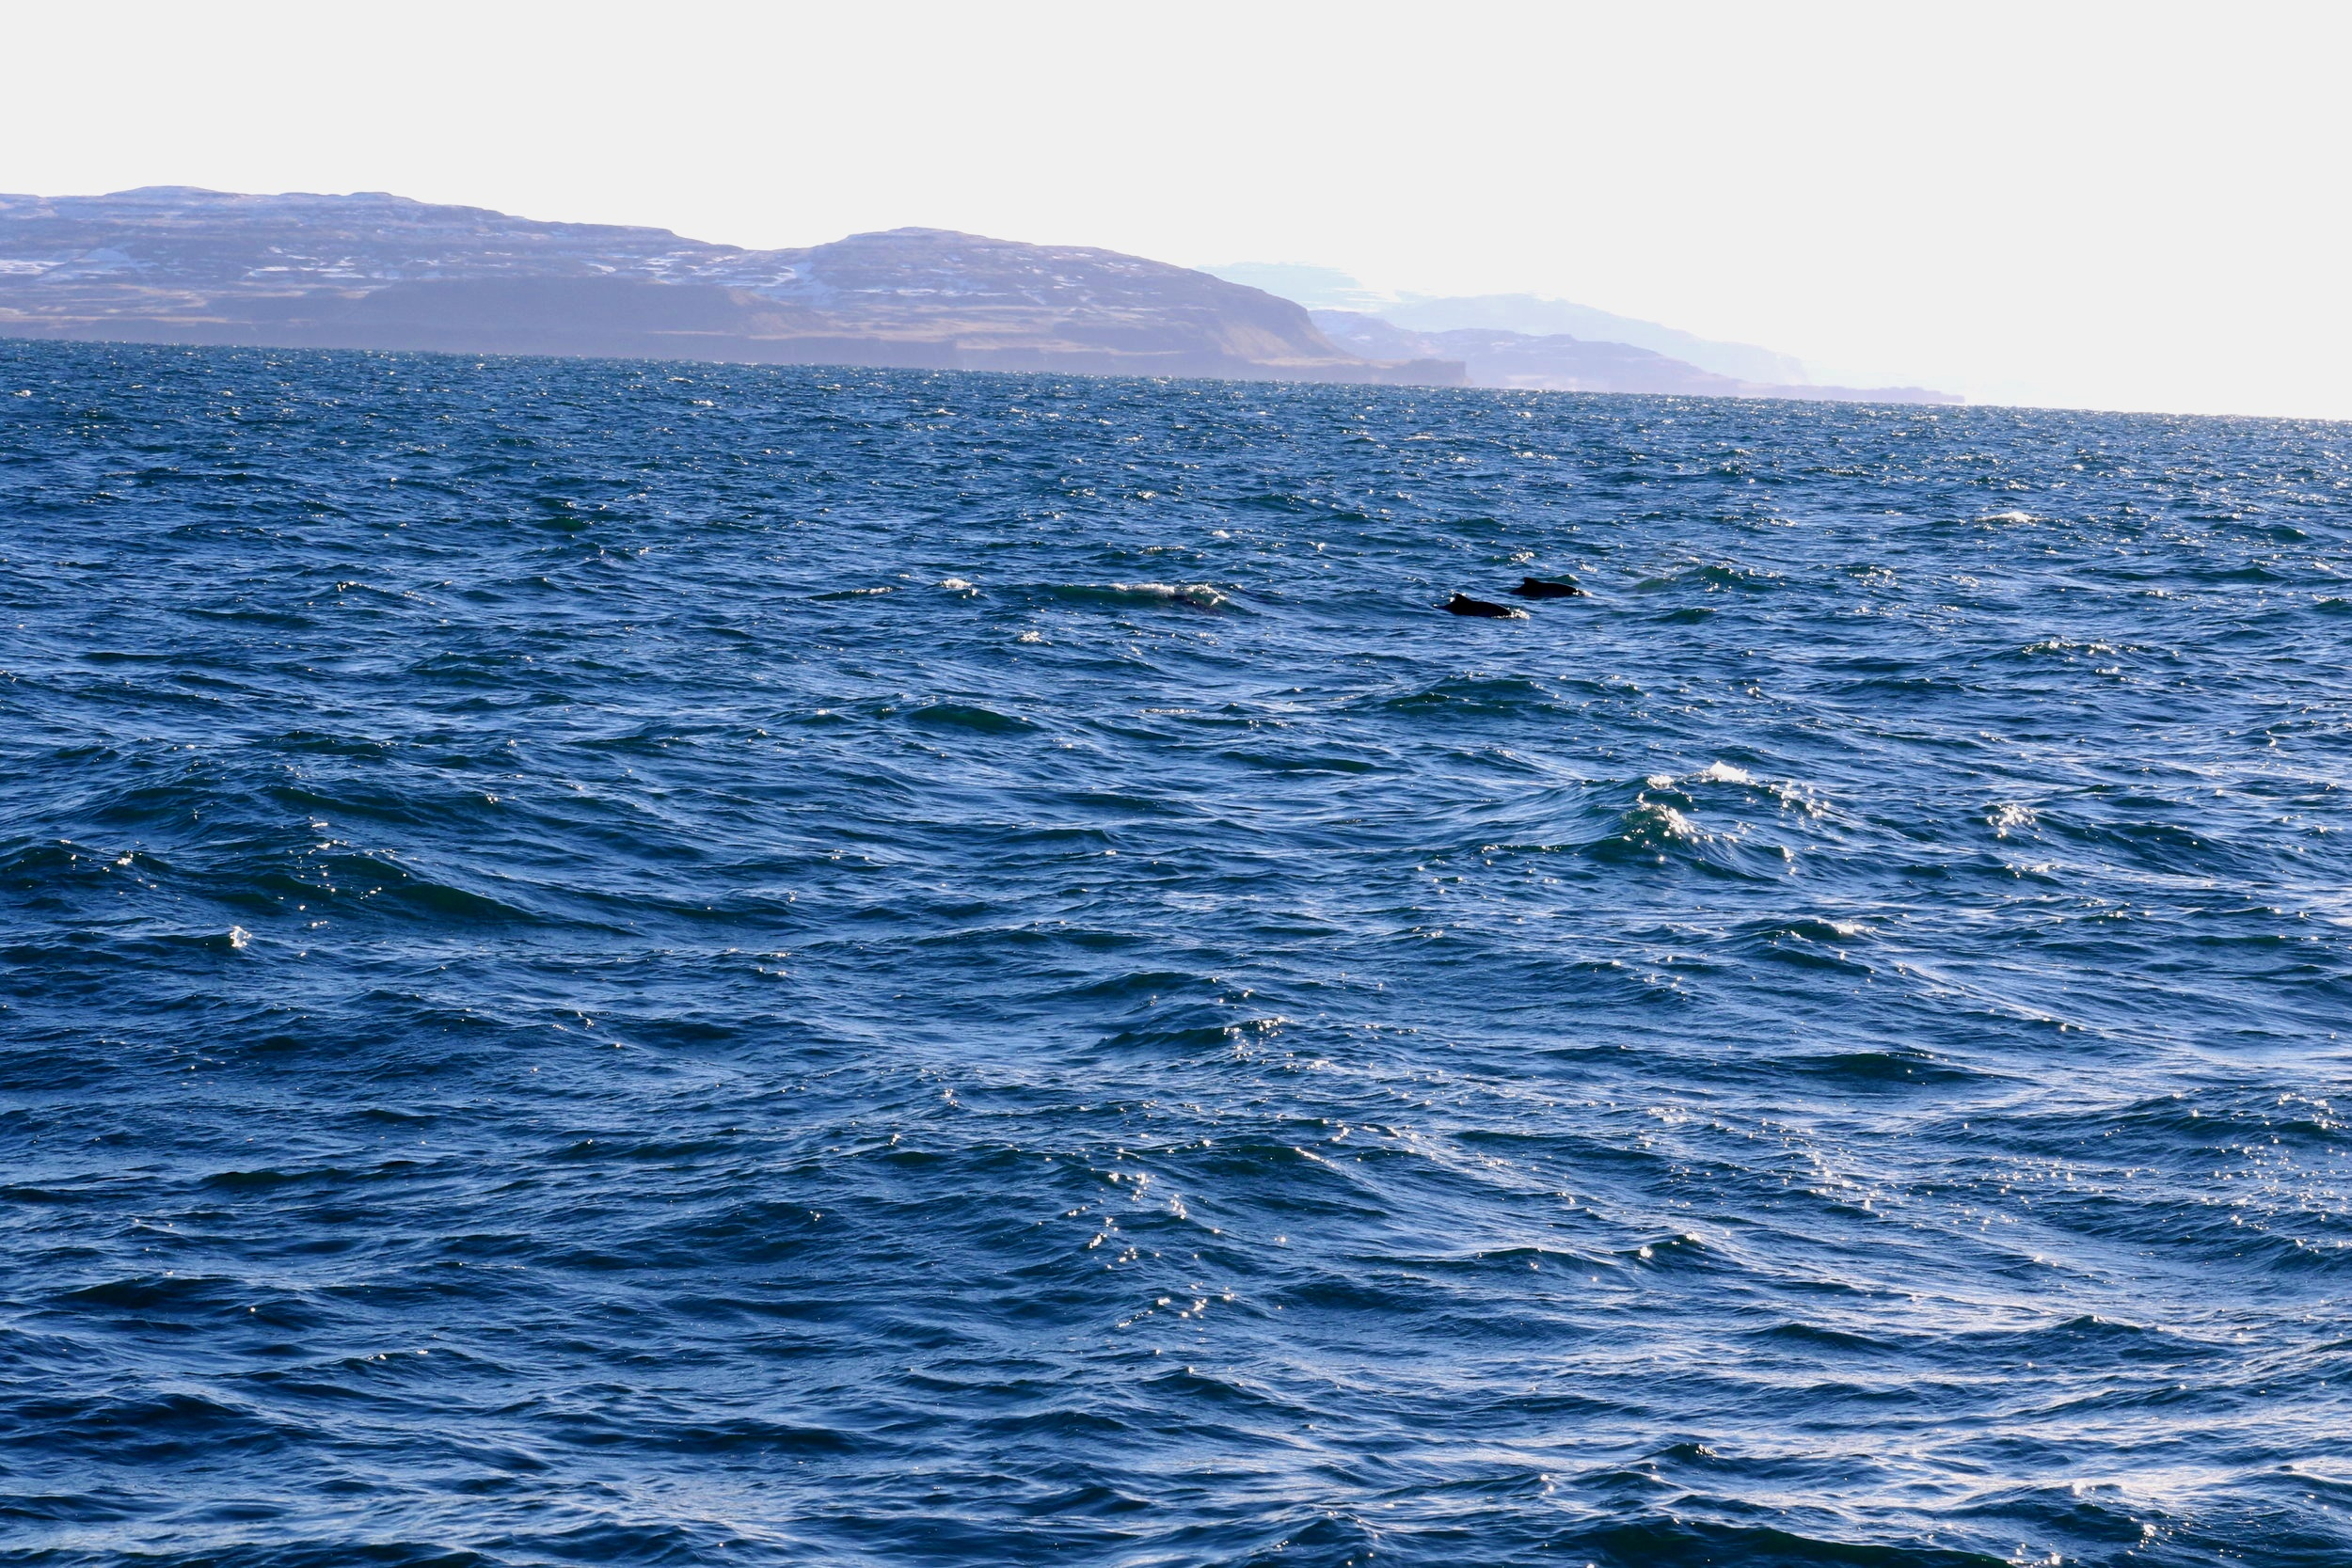 Some of the harbour porpoise seen on this survey